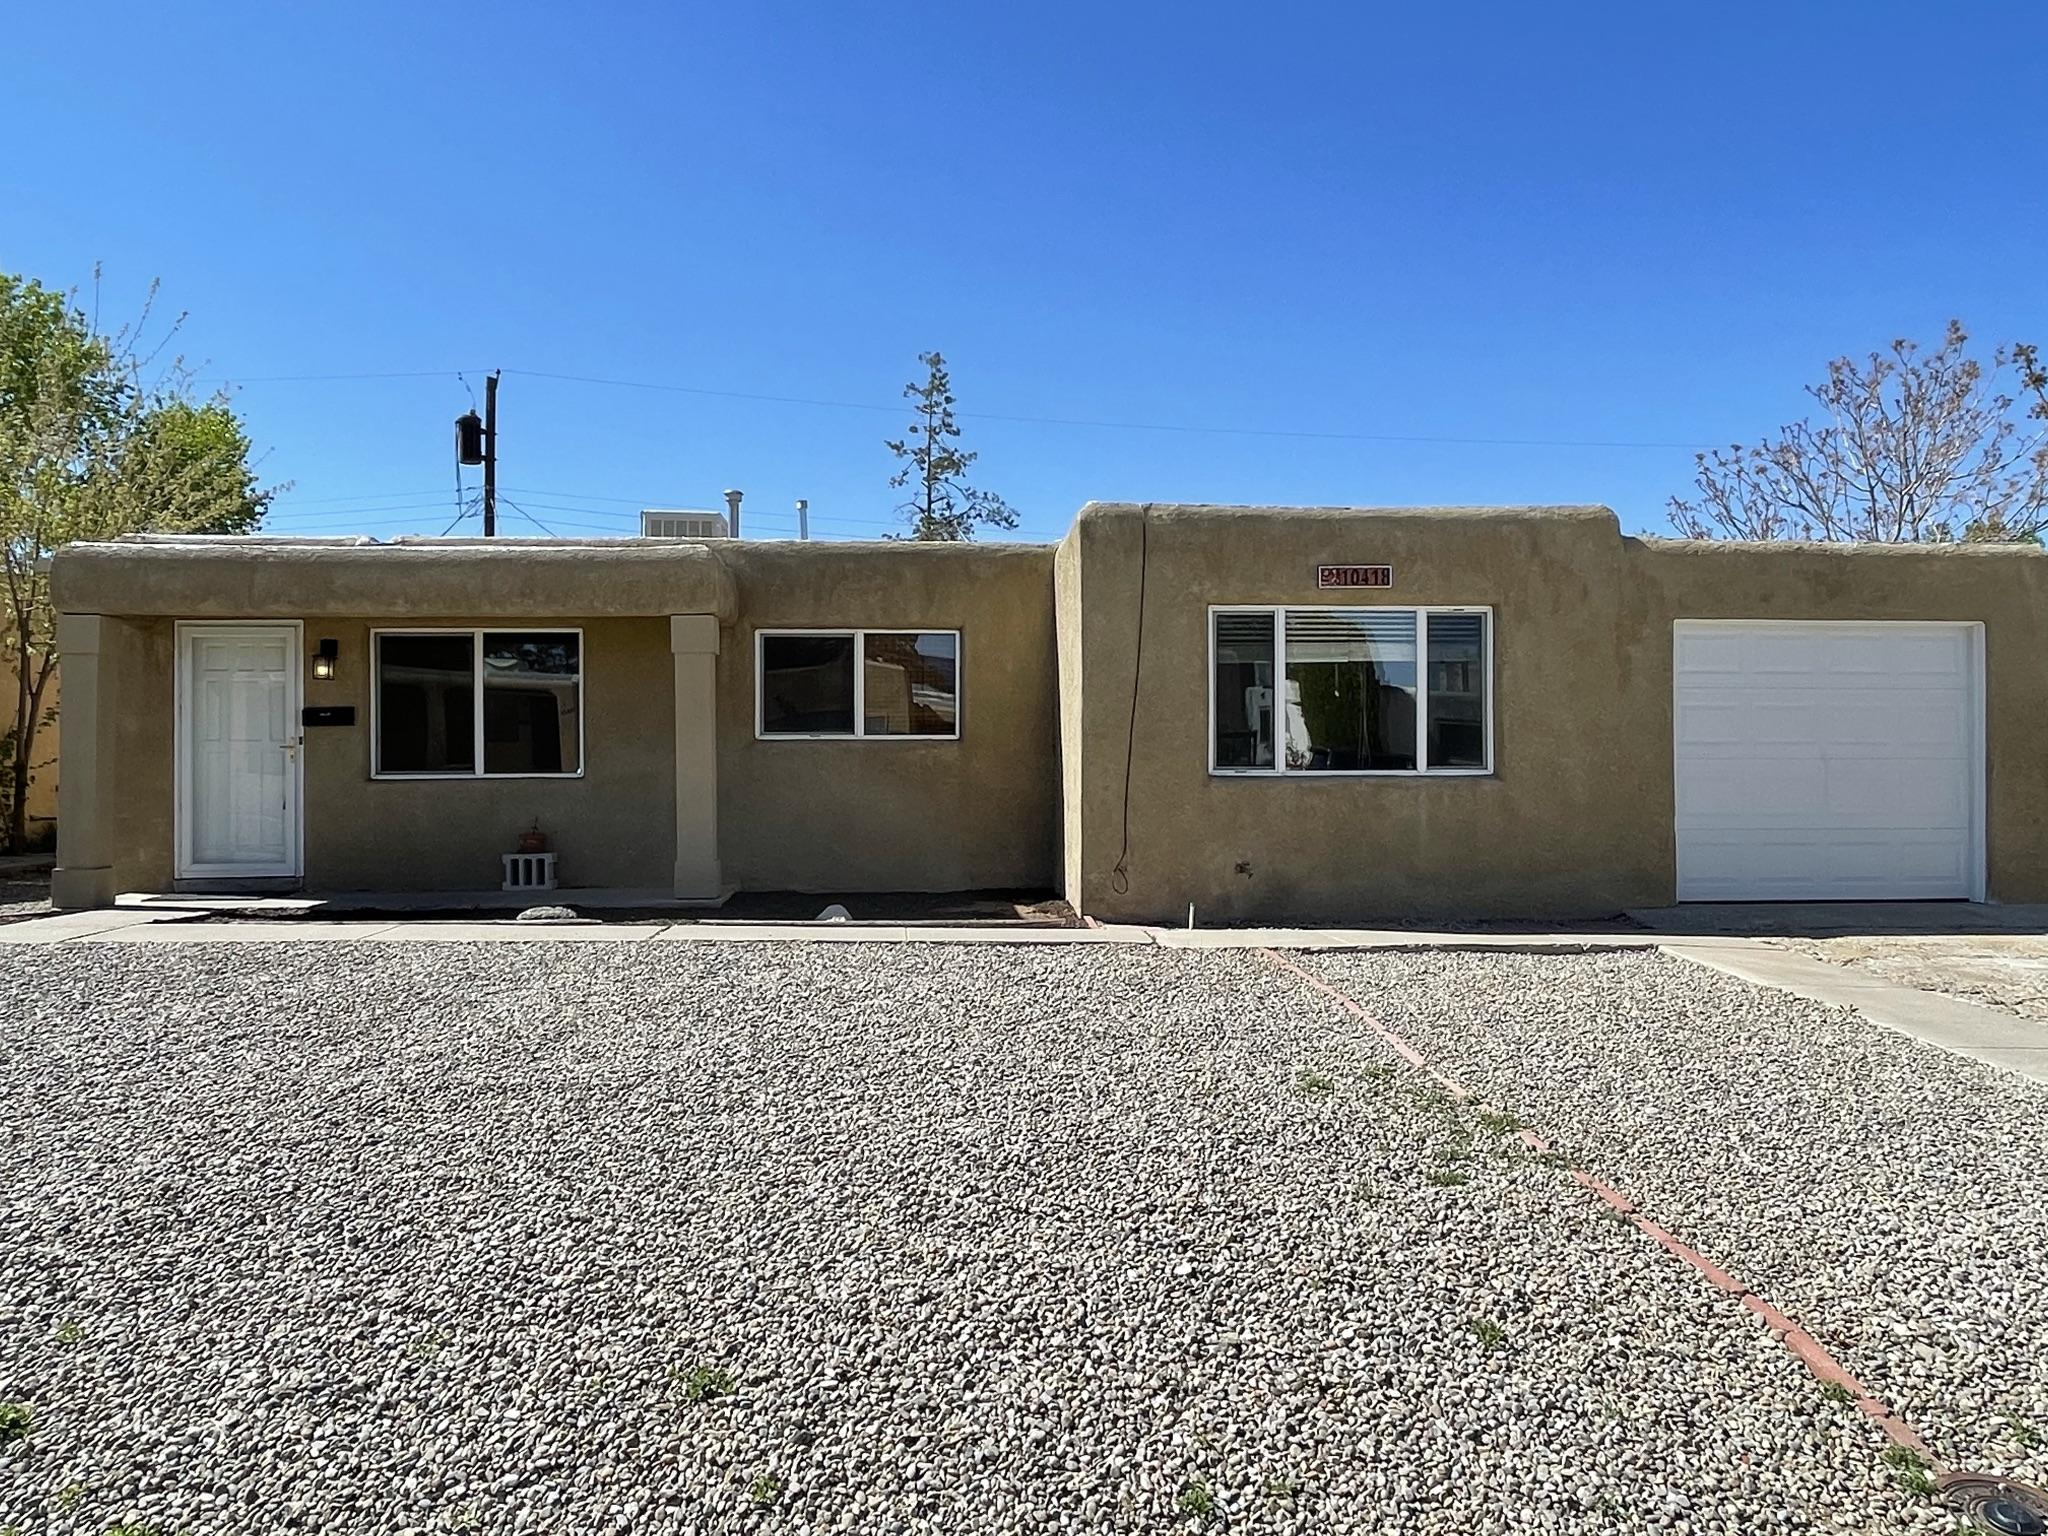 Bran spanking new roof!  Come check out this 4 bedroom home available near Menaul Blvd NE and Morris St NE!  No HOA, no carpet!  Large master with walk-in closet. Open kitchen with plenty of cabinets, stainless steel appliances, separate laundry room, large landscaped yard, & newer windows!  Separate fenced run in the backyard!   Come check it out!